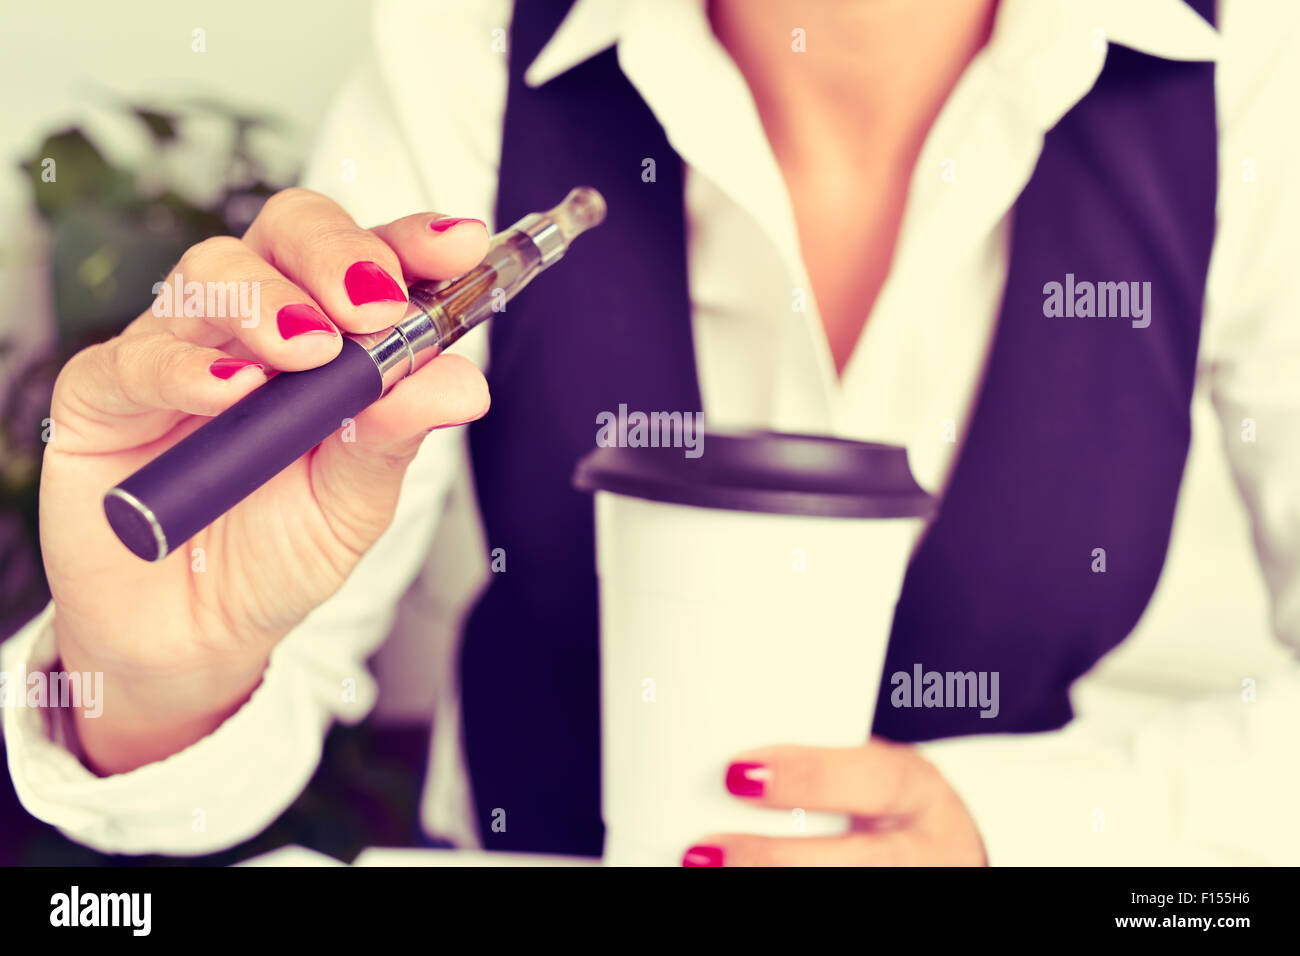 a young caucasian woman, with a cup of coffee in her hand, vapes from an electronic cigarette - Stock Image